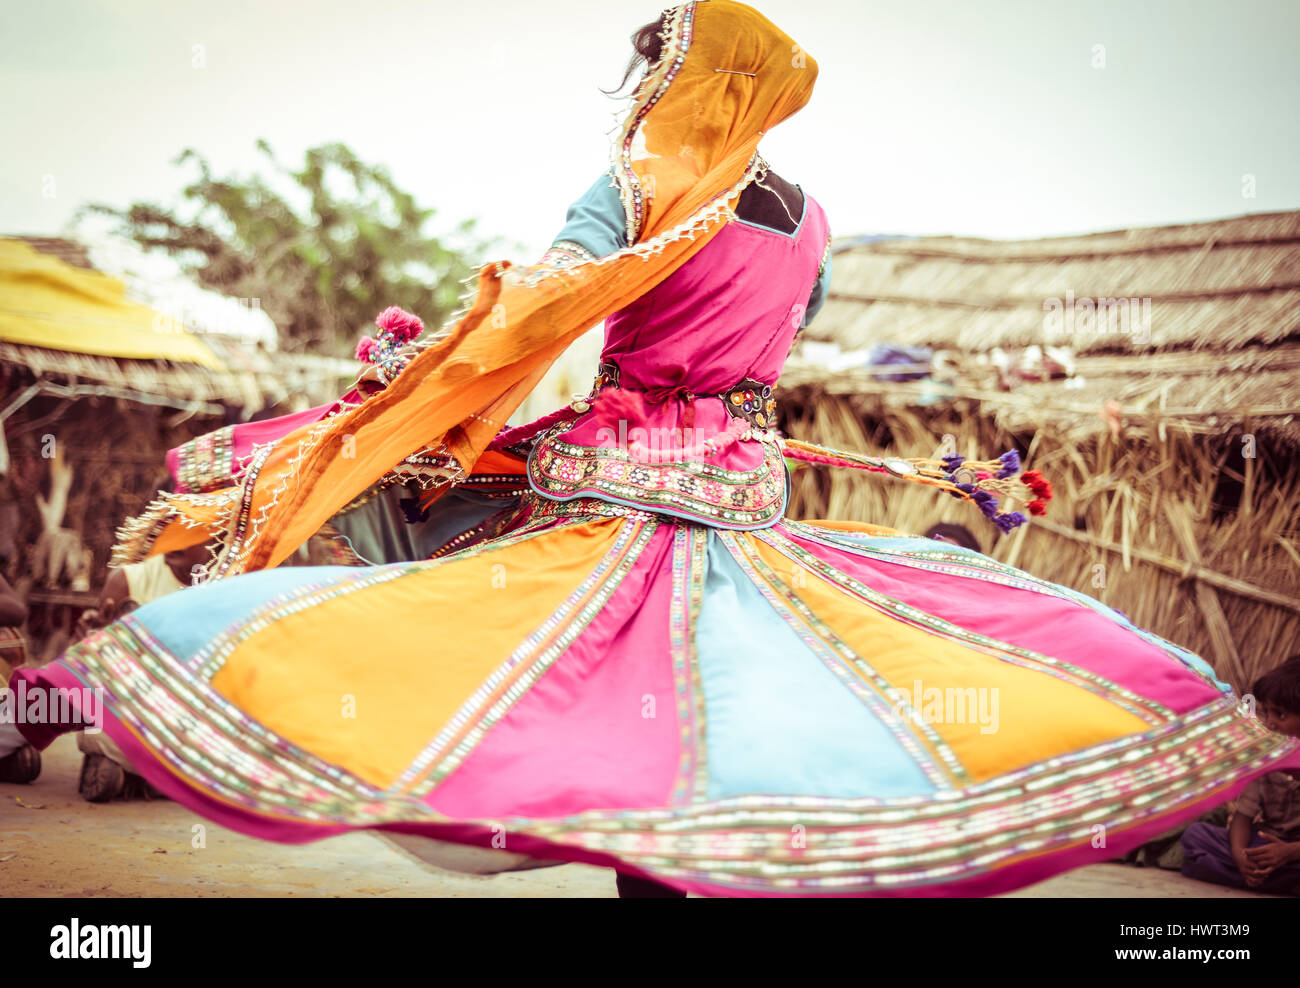 Woman in traditional clothing dancing on field - Stock Image